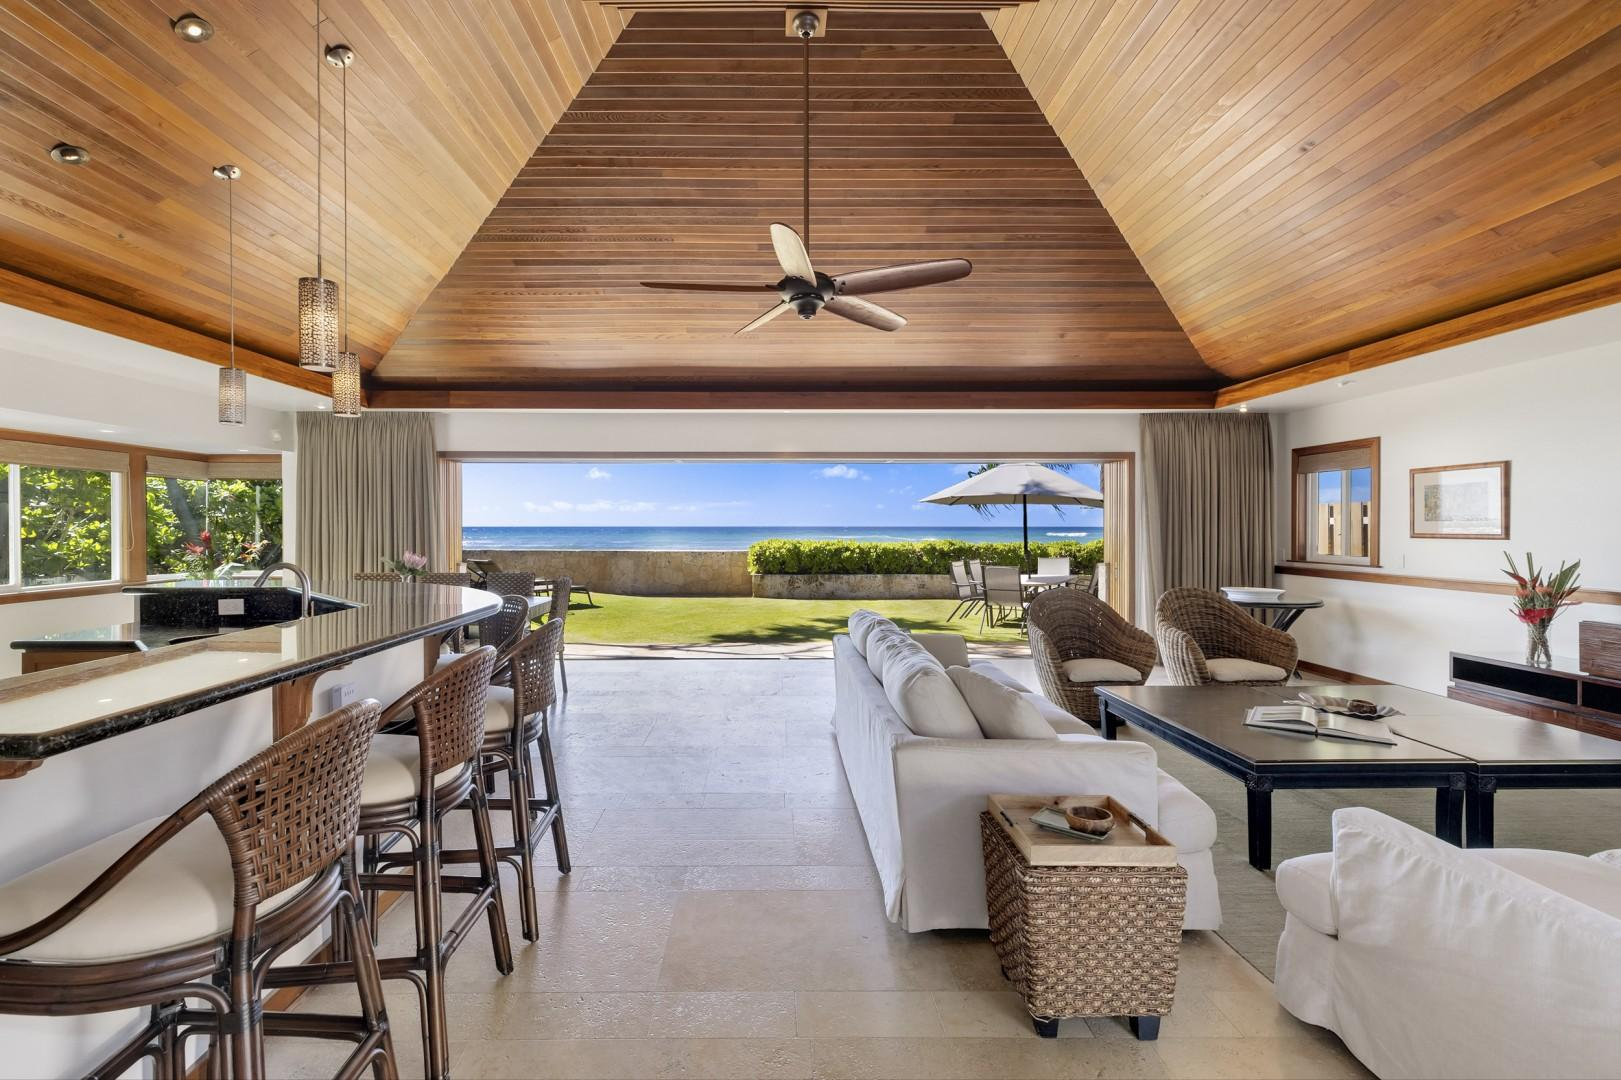 Living Room opens up to the Oceanside Yard